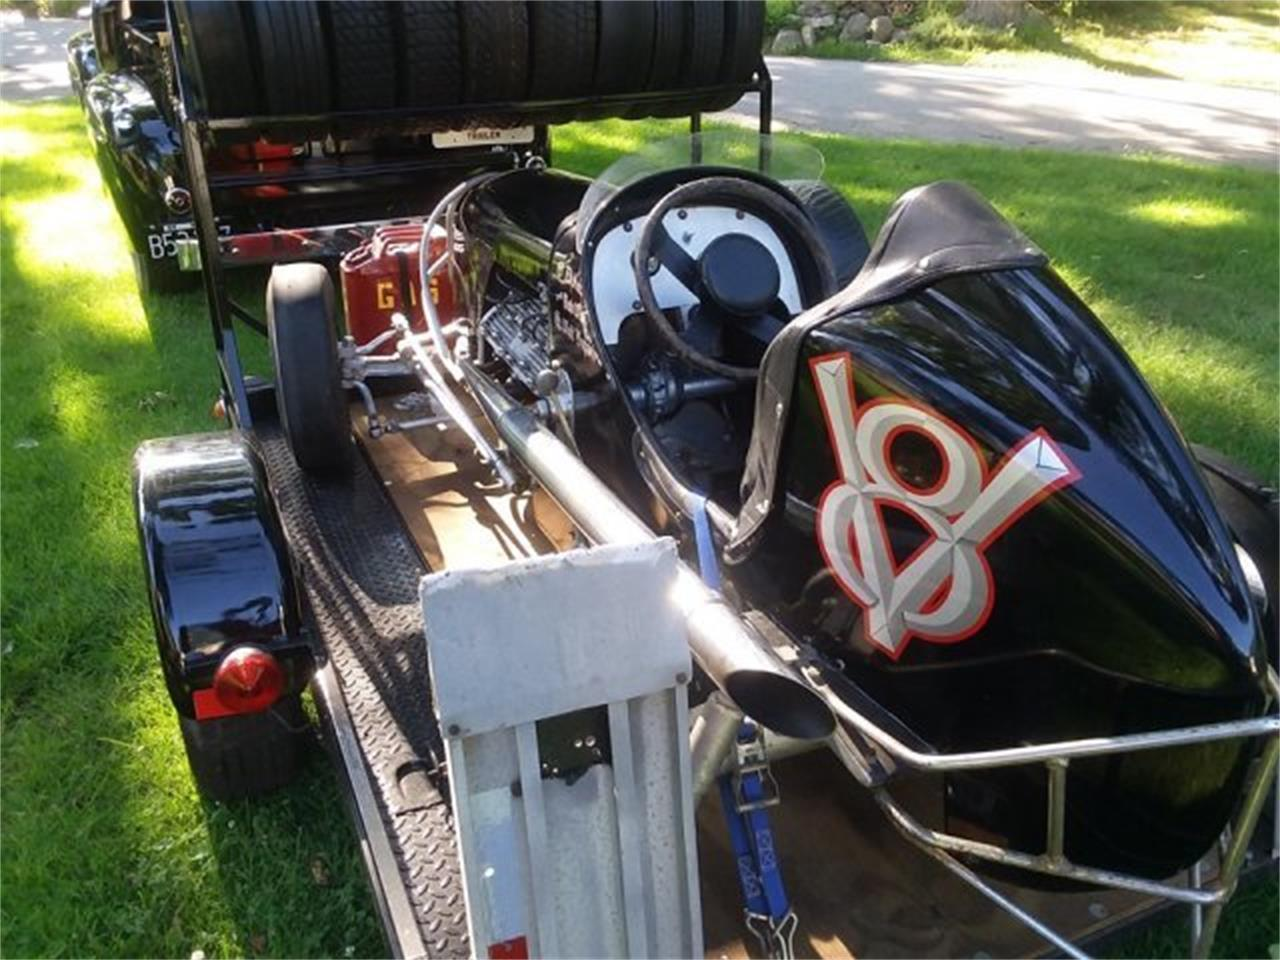 1948 Ford Race Car (CC-1258249) for sale in Hanover, Massachusetts